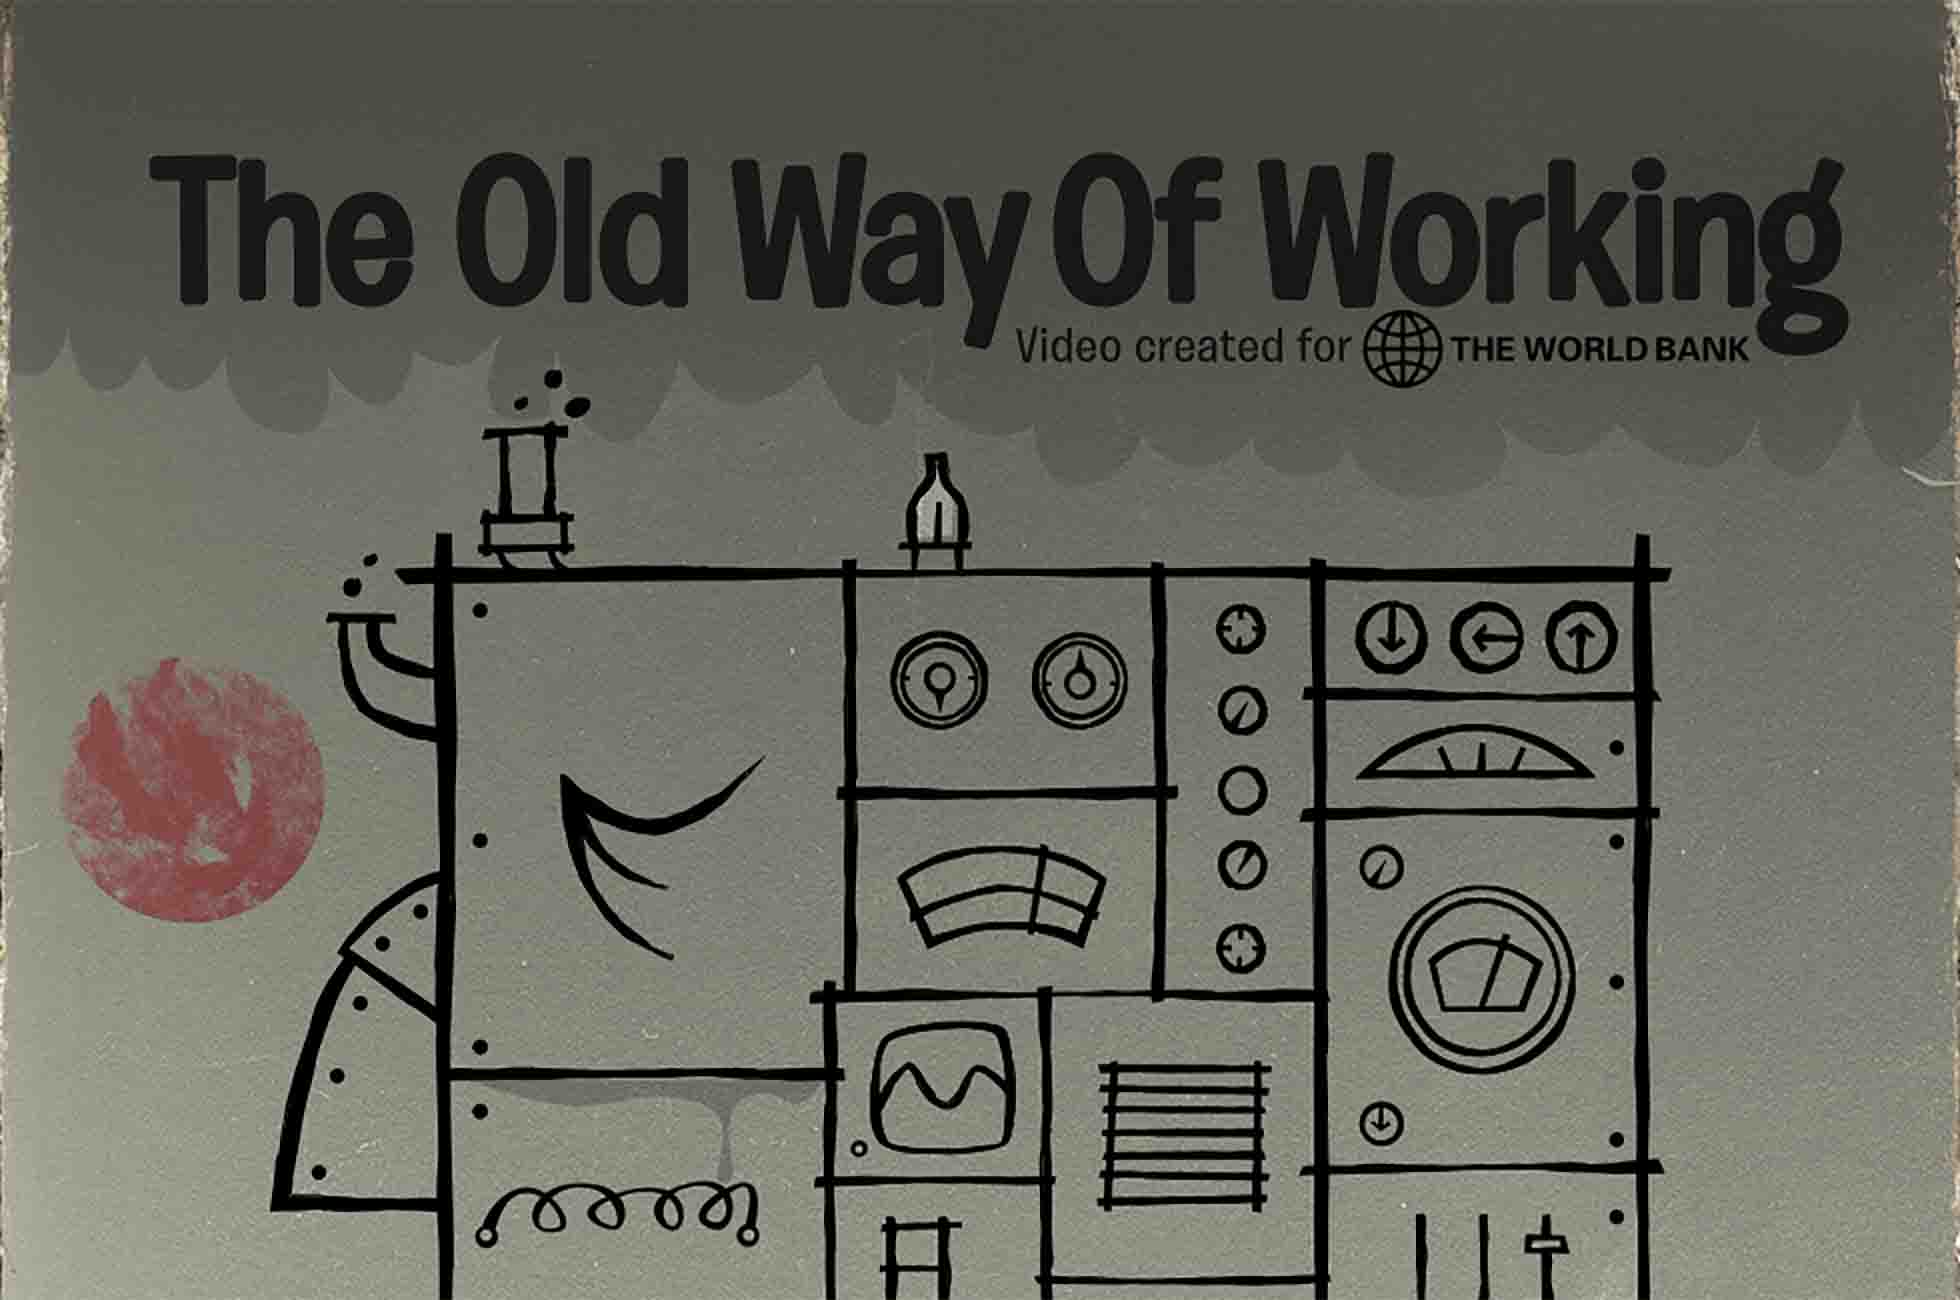 The Old Way of Working video created for the World Bank